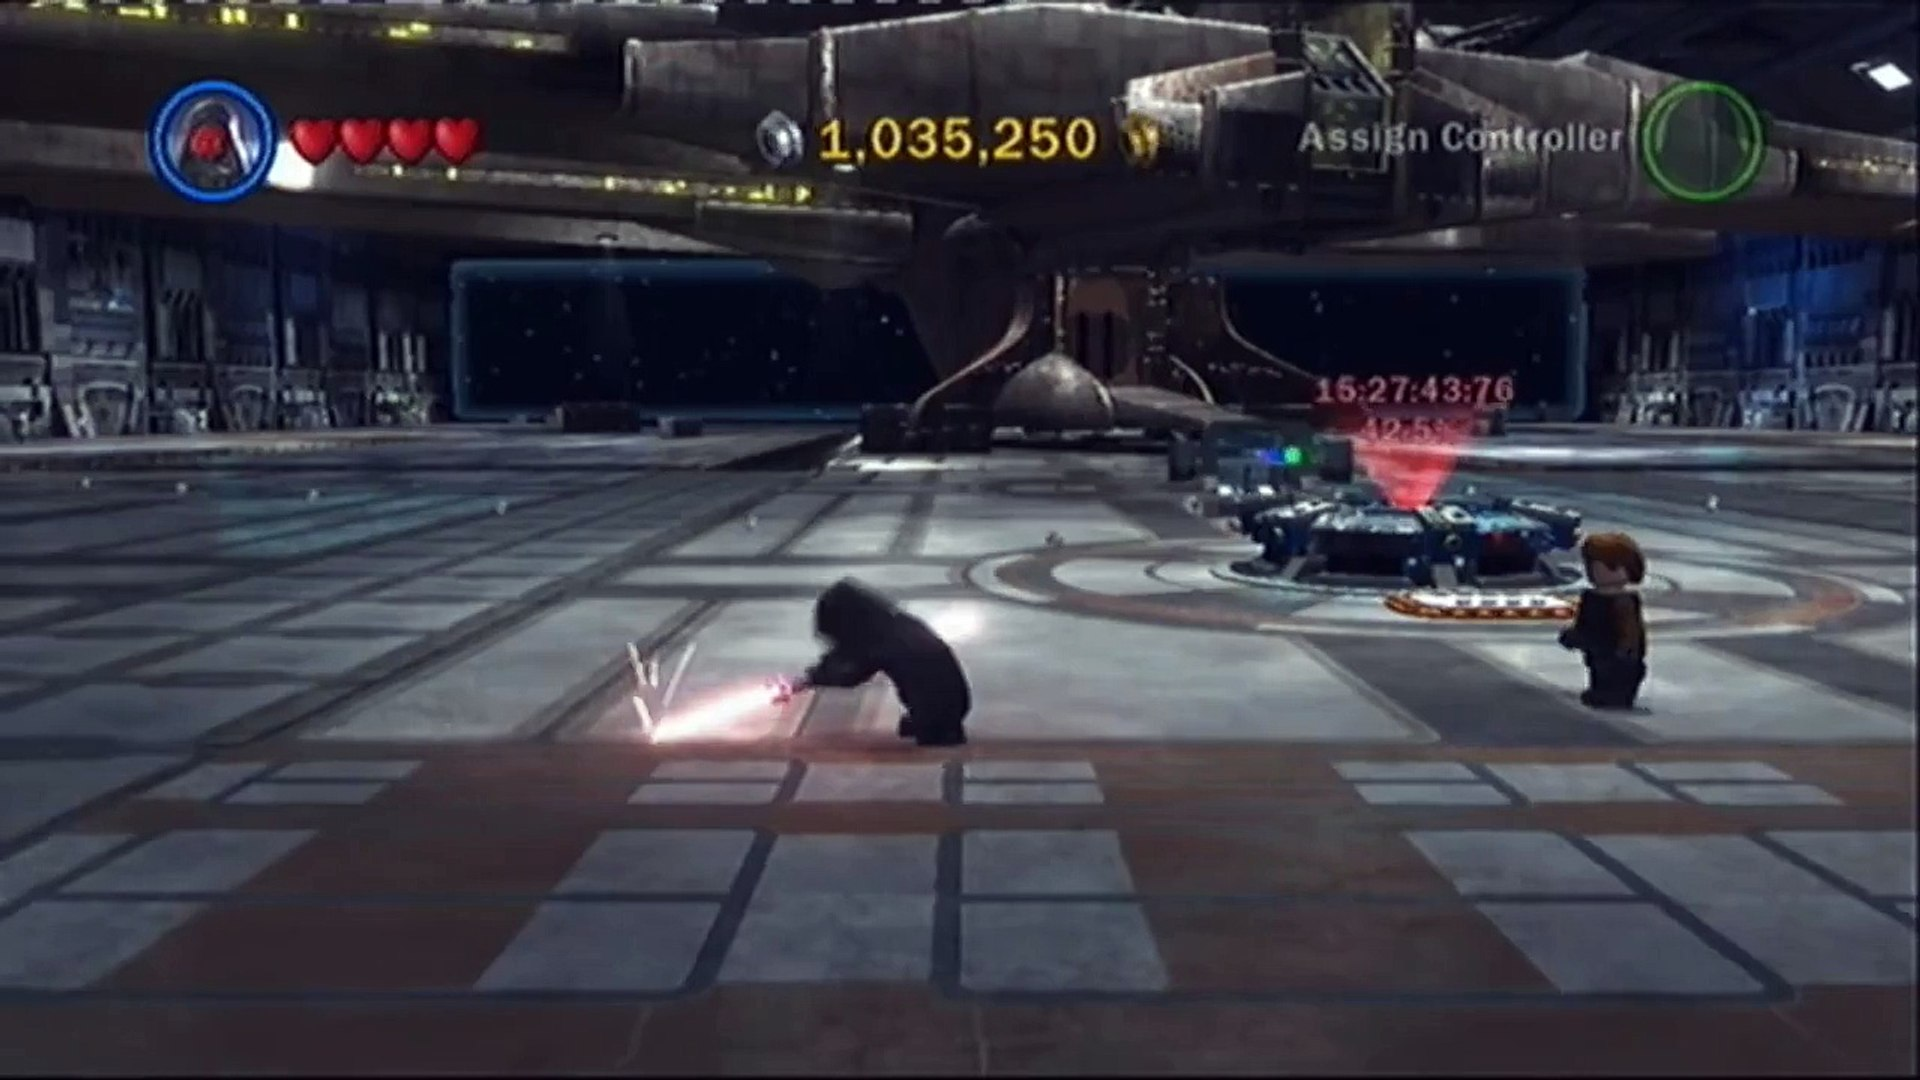 Lego Star Wars 3 The Clone Wars: Darth Maul Gameplay